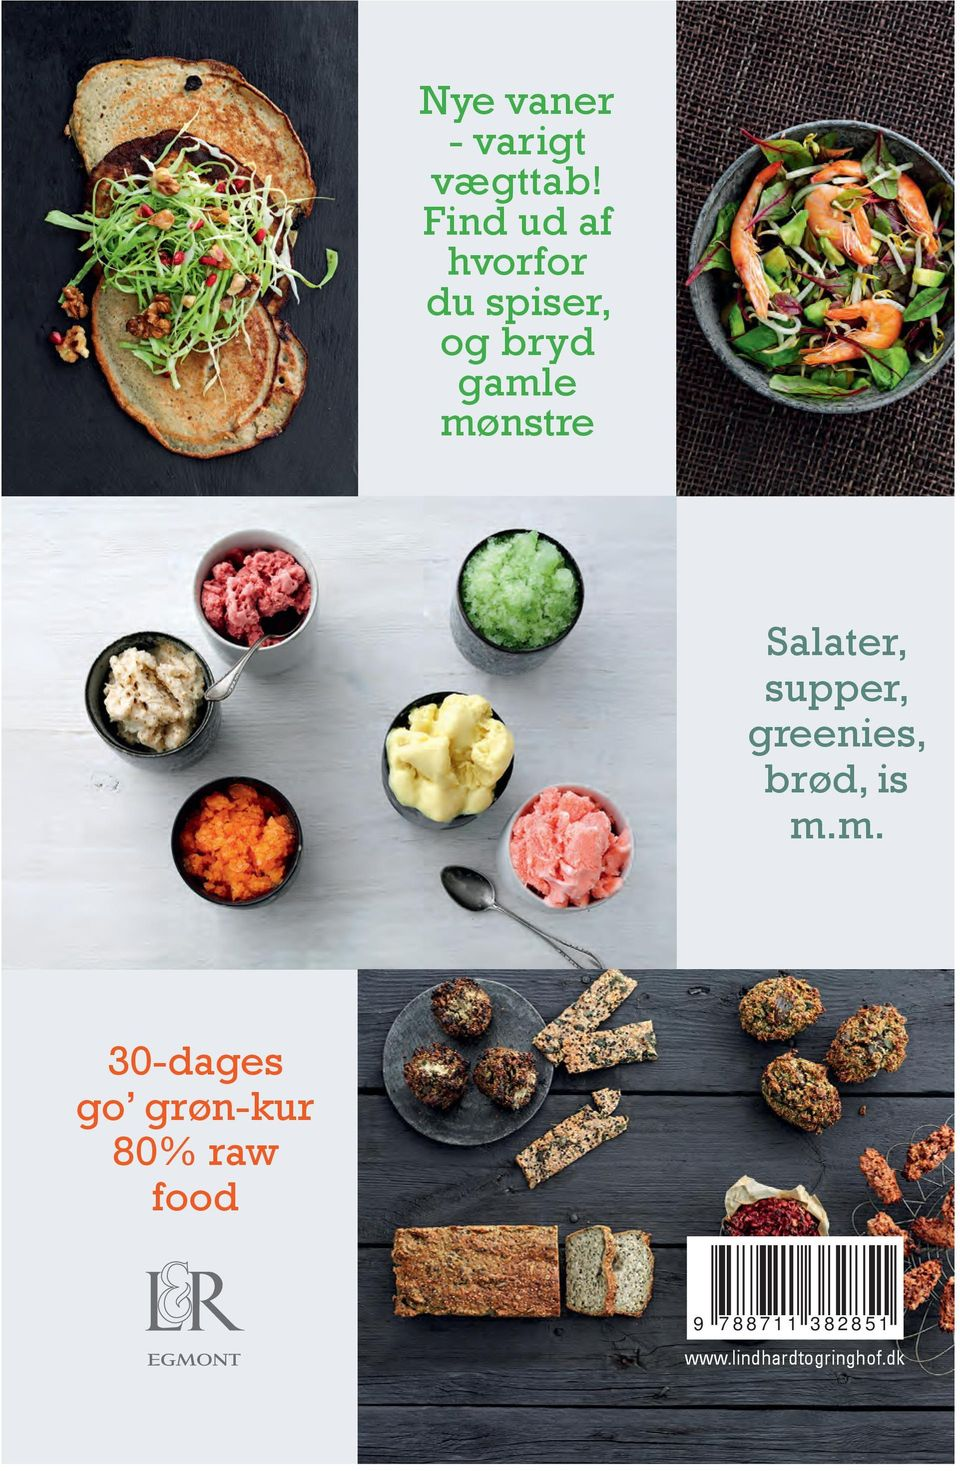 Salater, supper, greenies, brød, is m.